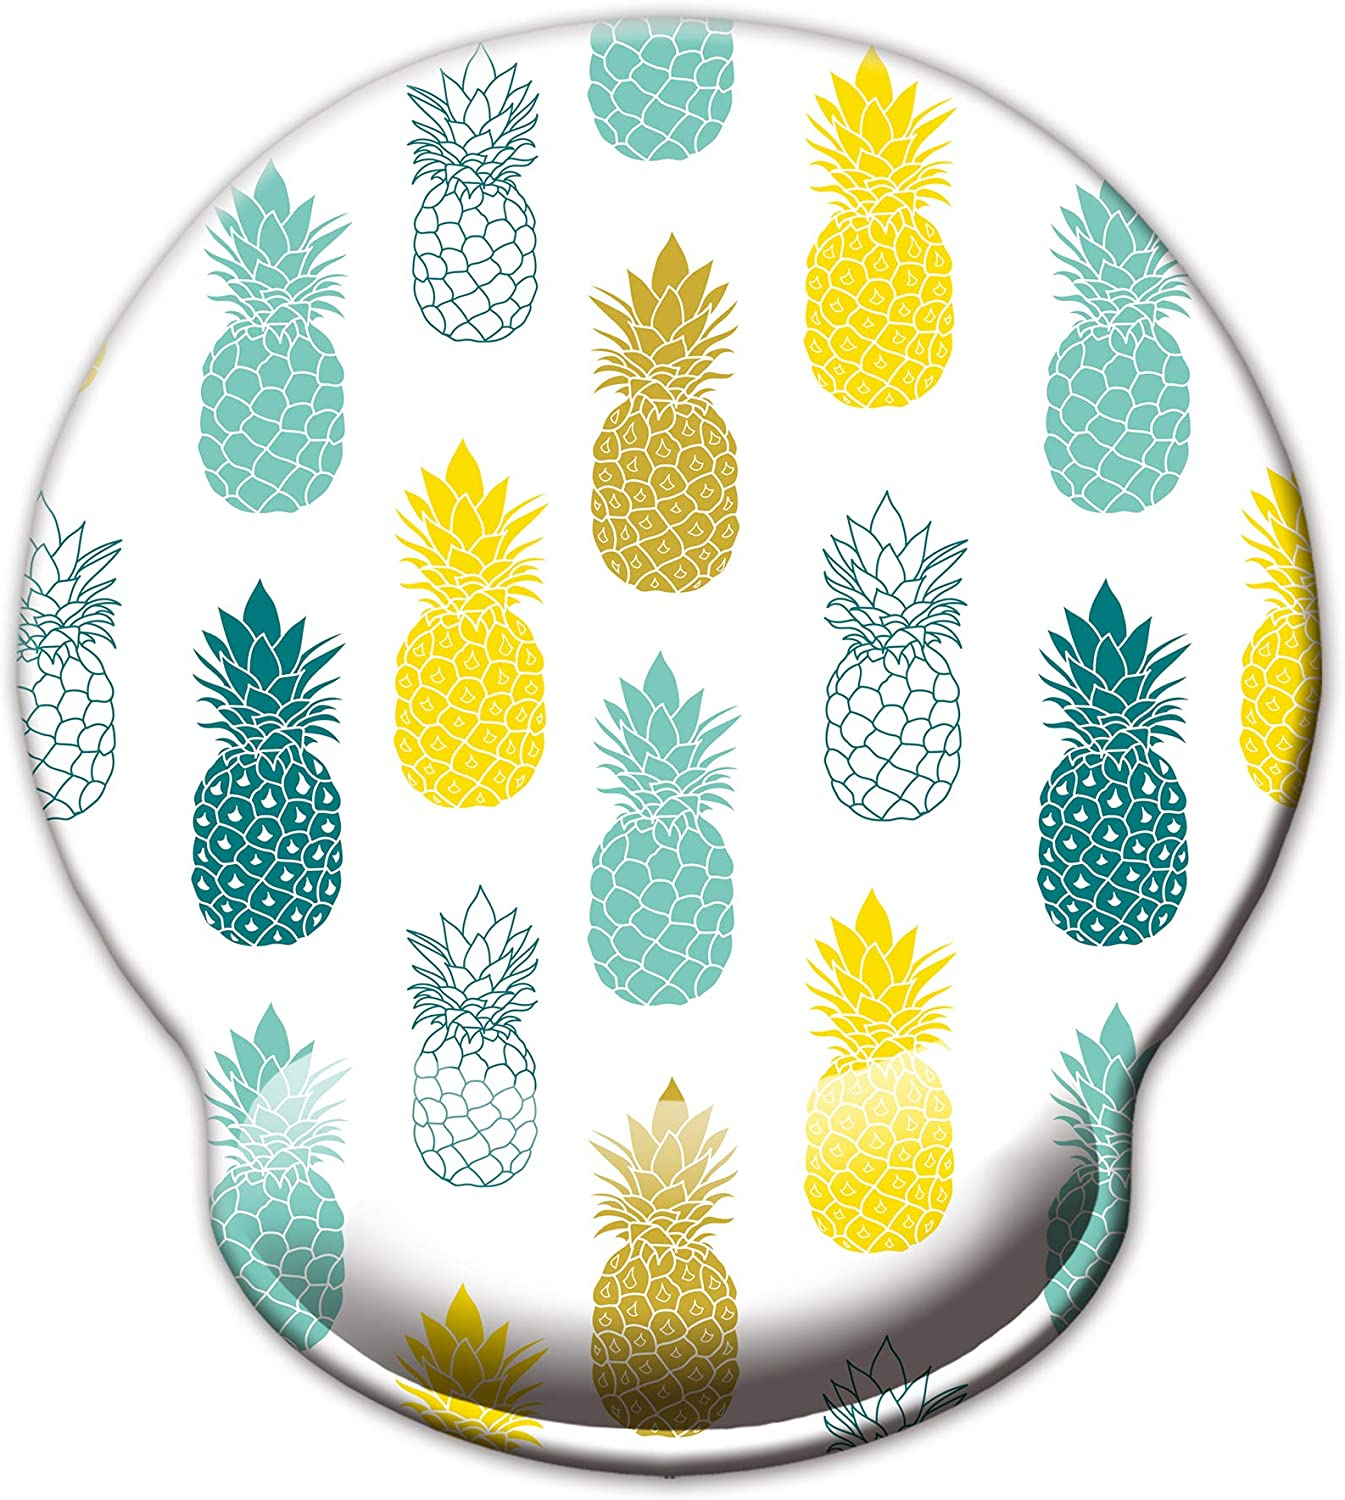 Ergonomic Mouse Pad with Wrist Support,Dooke Cute Wrist Pad with Non-Slip Rubber Base for Computer, Laptop, Home Office Gaming, Working, Easy Typing & Pain Relief Pineapple